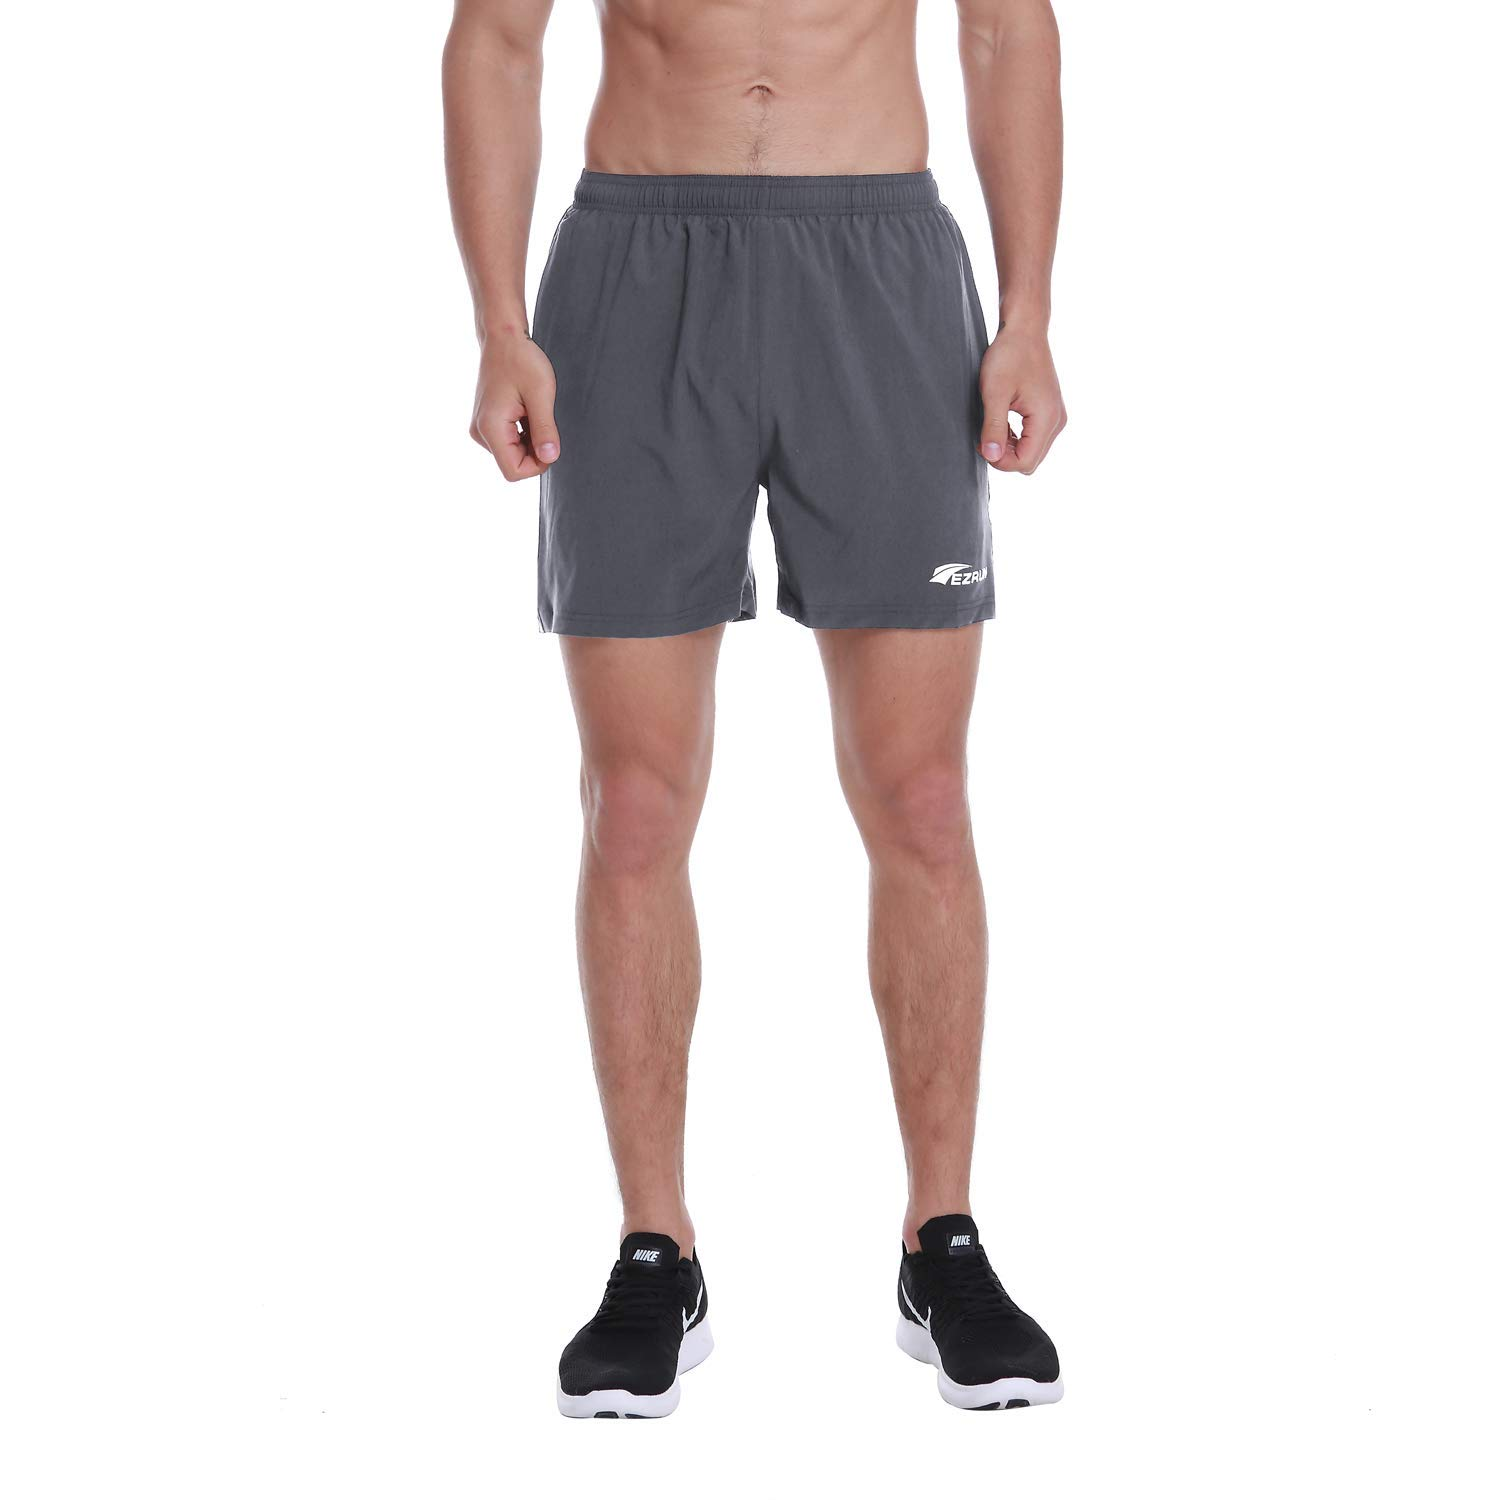 EZRUN Men's 5 Inches Running Workout Shorts Quick Dry Lightweight Athletic Shorts with Liner Zipper Pockets,Grey,L by EZRUN